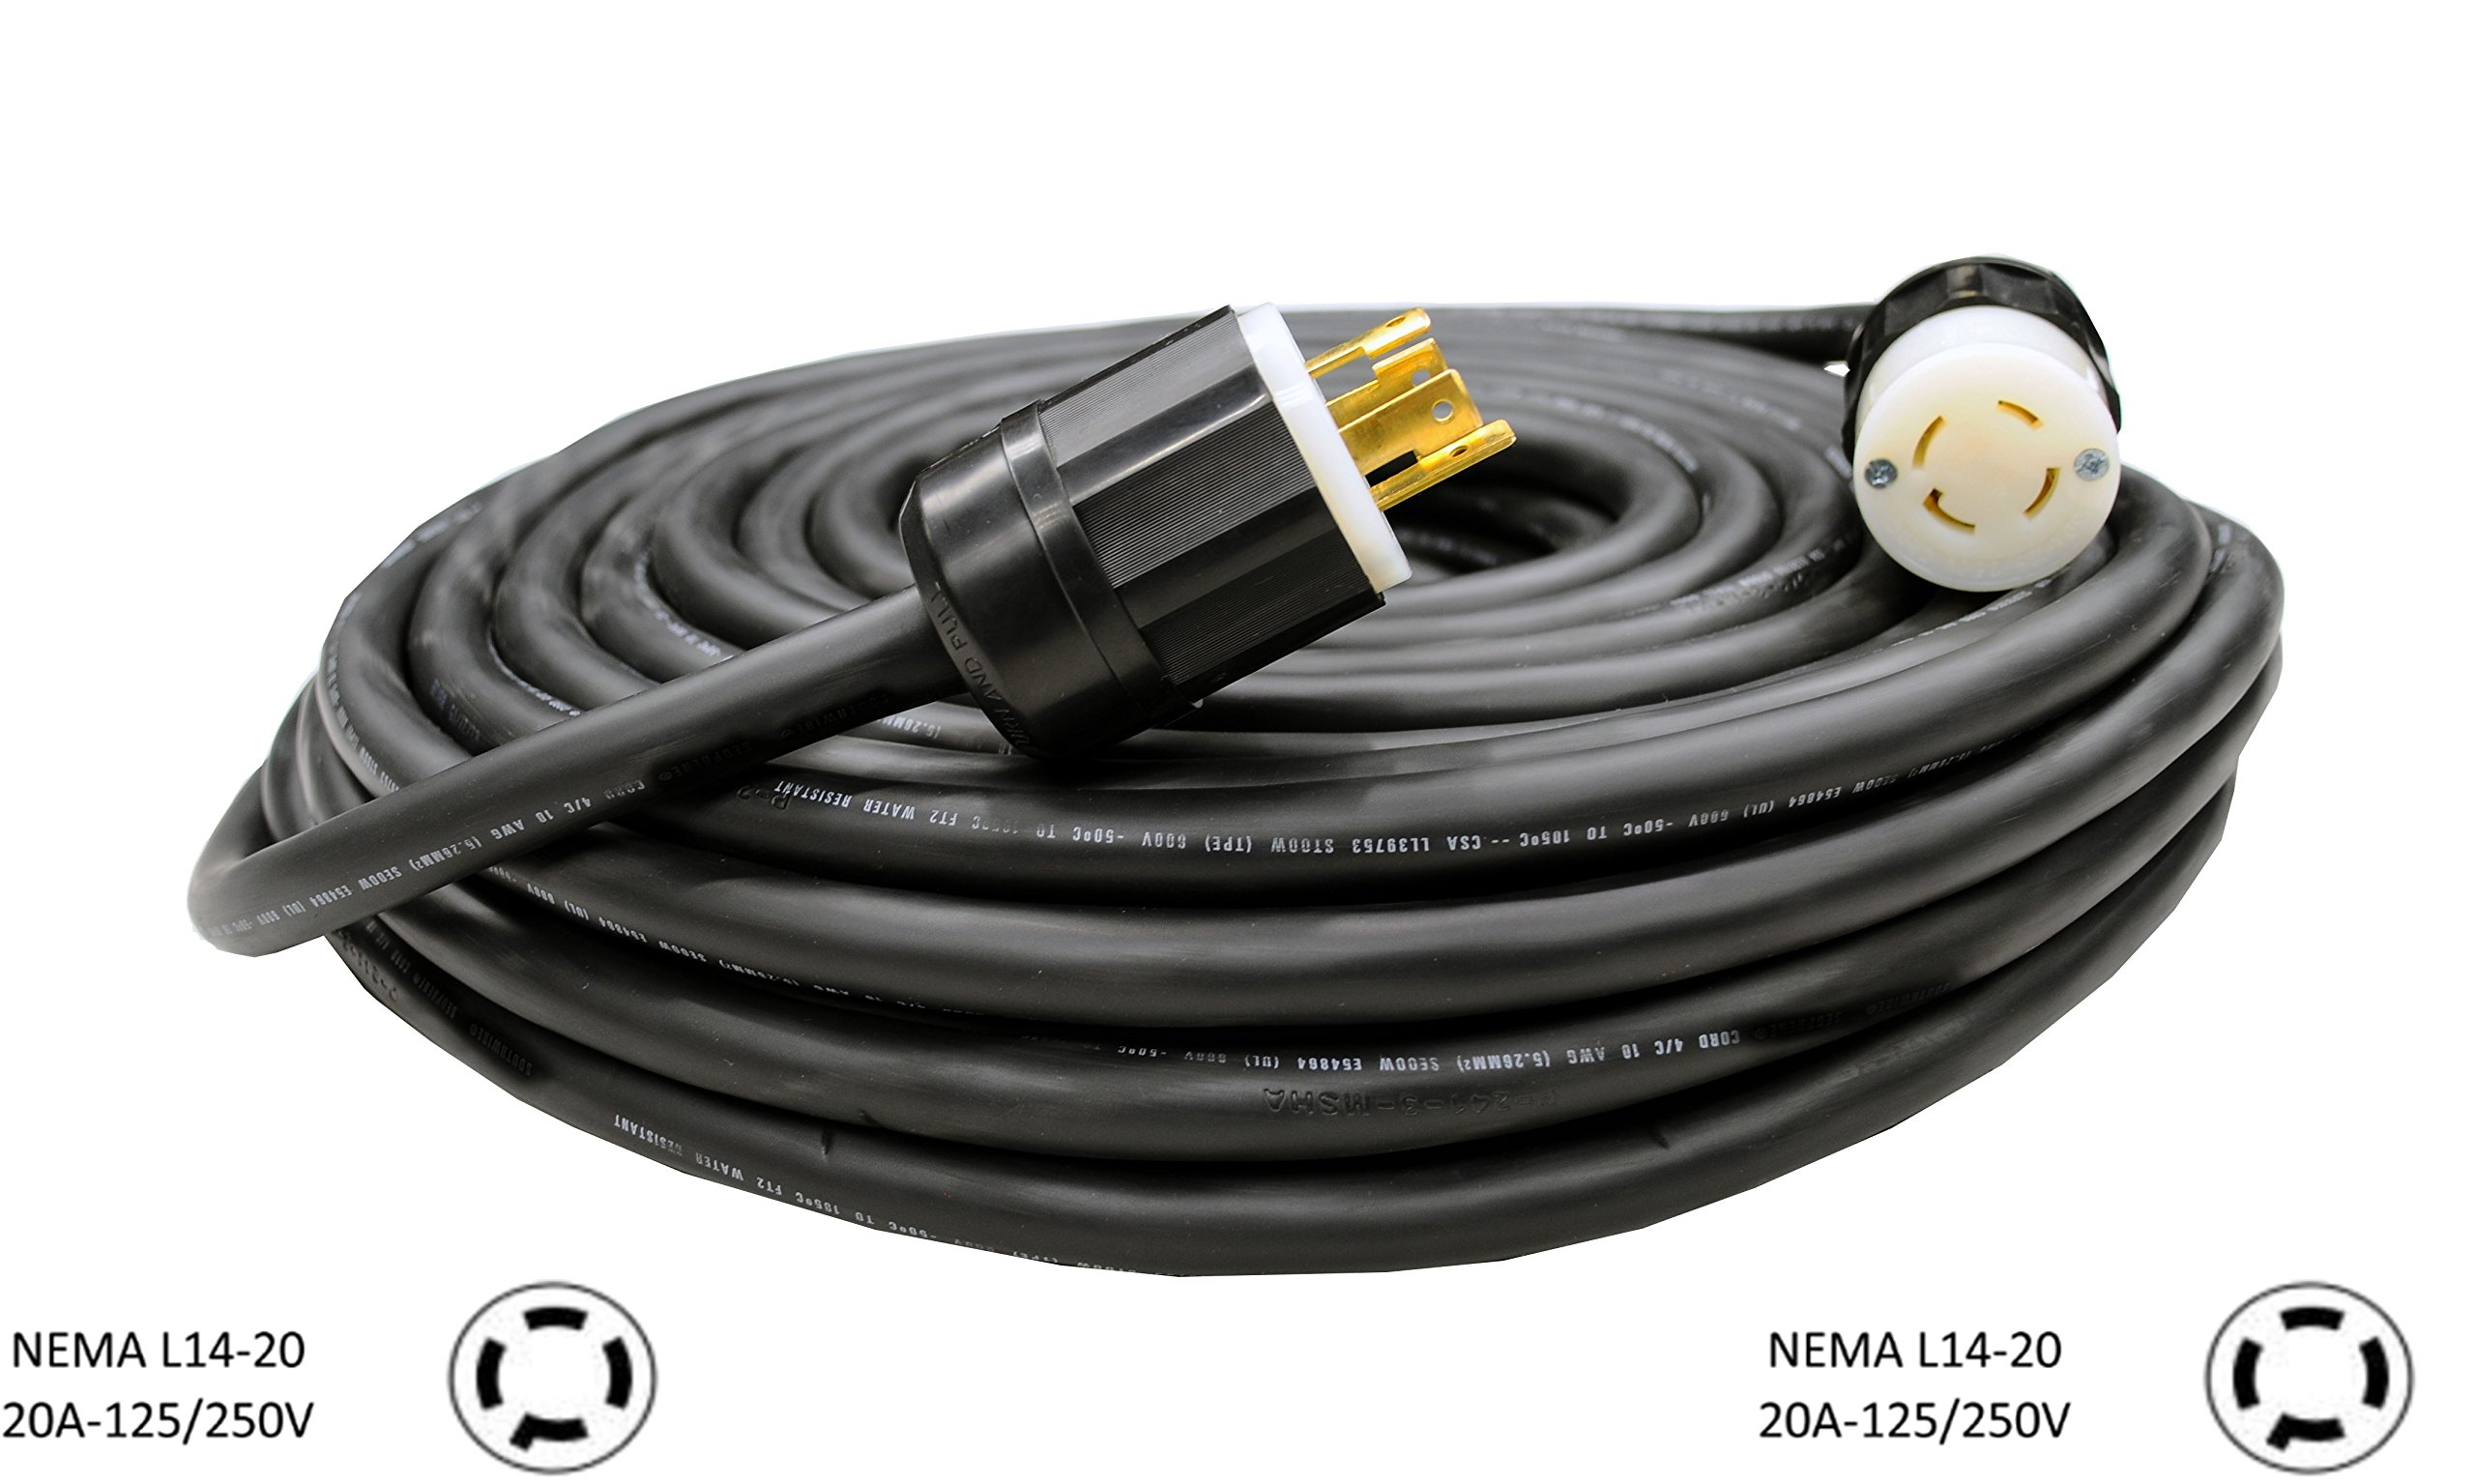 NEMA L14-20 Generator Extension Cord - 20A, 125/250V, 10/4 SOOW Heavy Duty Industrial Cable (50 Ft.)